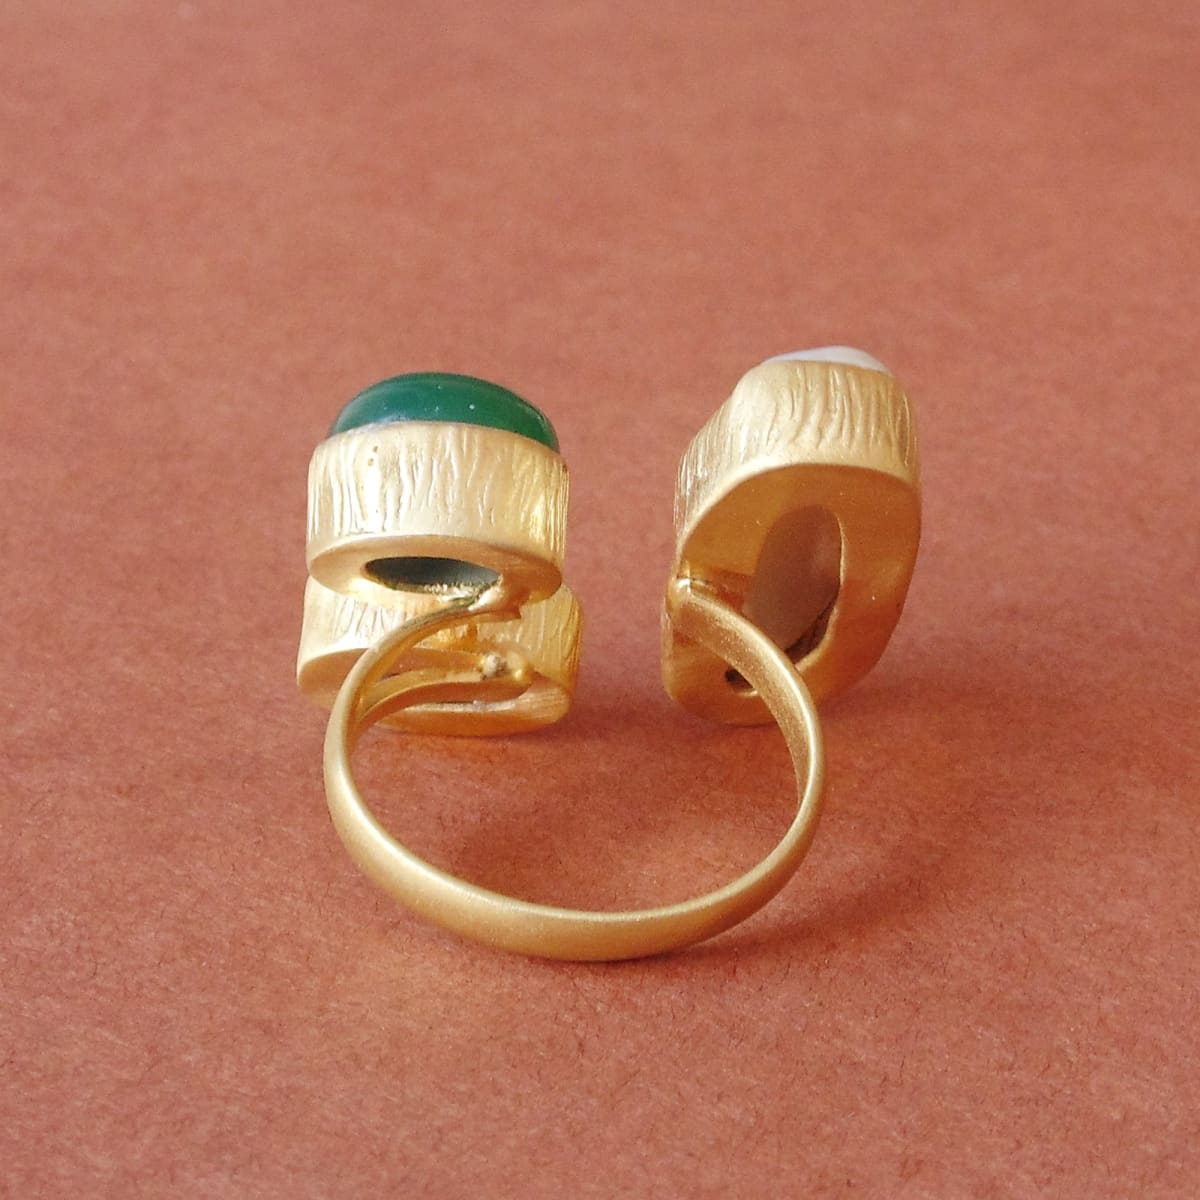 Handcrafted 18K Matte Gold Plated Biwa Pearl Green Onyx And Amethyst Gemstone Cocktail Ring - by Bhagat Jewels